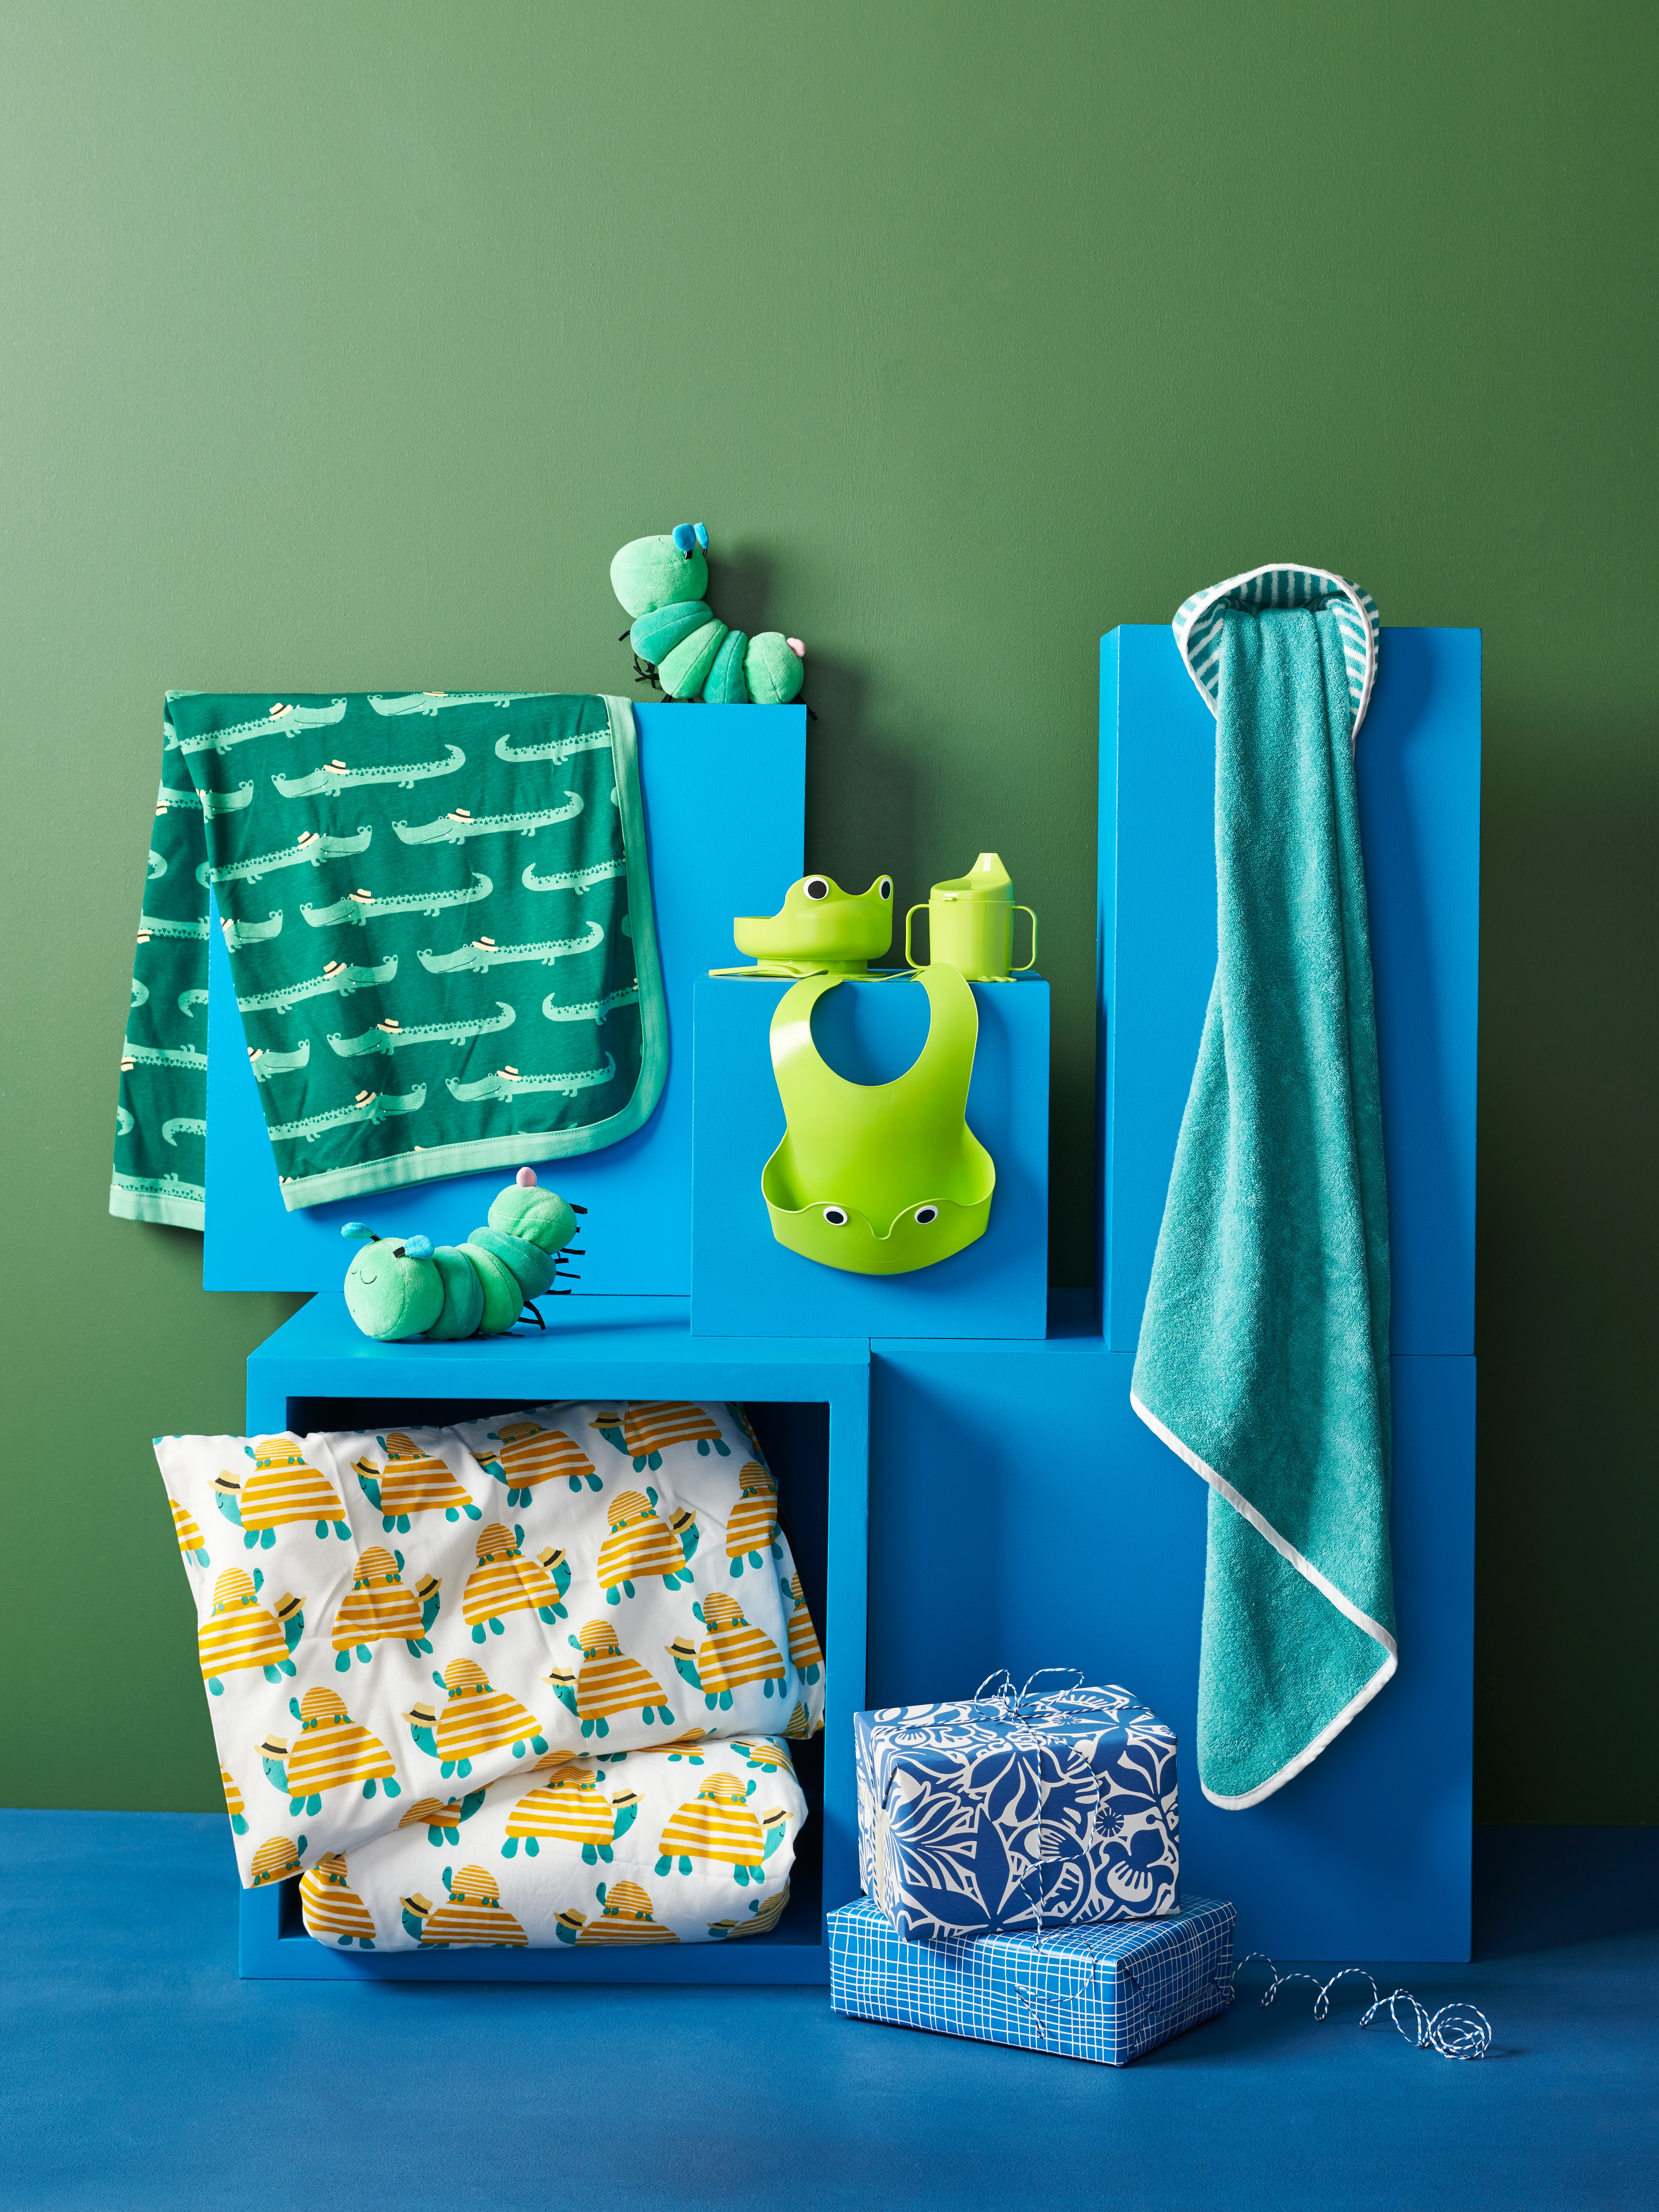 Children's bed linen, towels, soft toys and cup, bowl and bib set arranged on a blue shelving unit with wrapped presents.